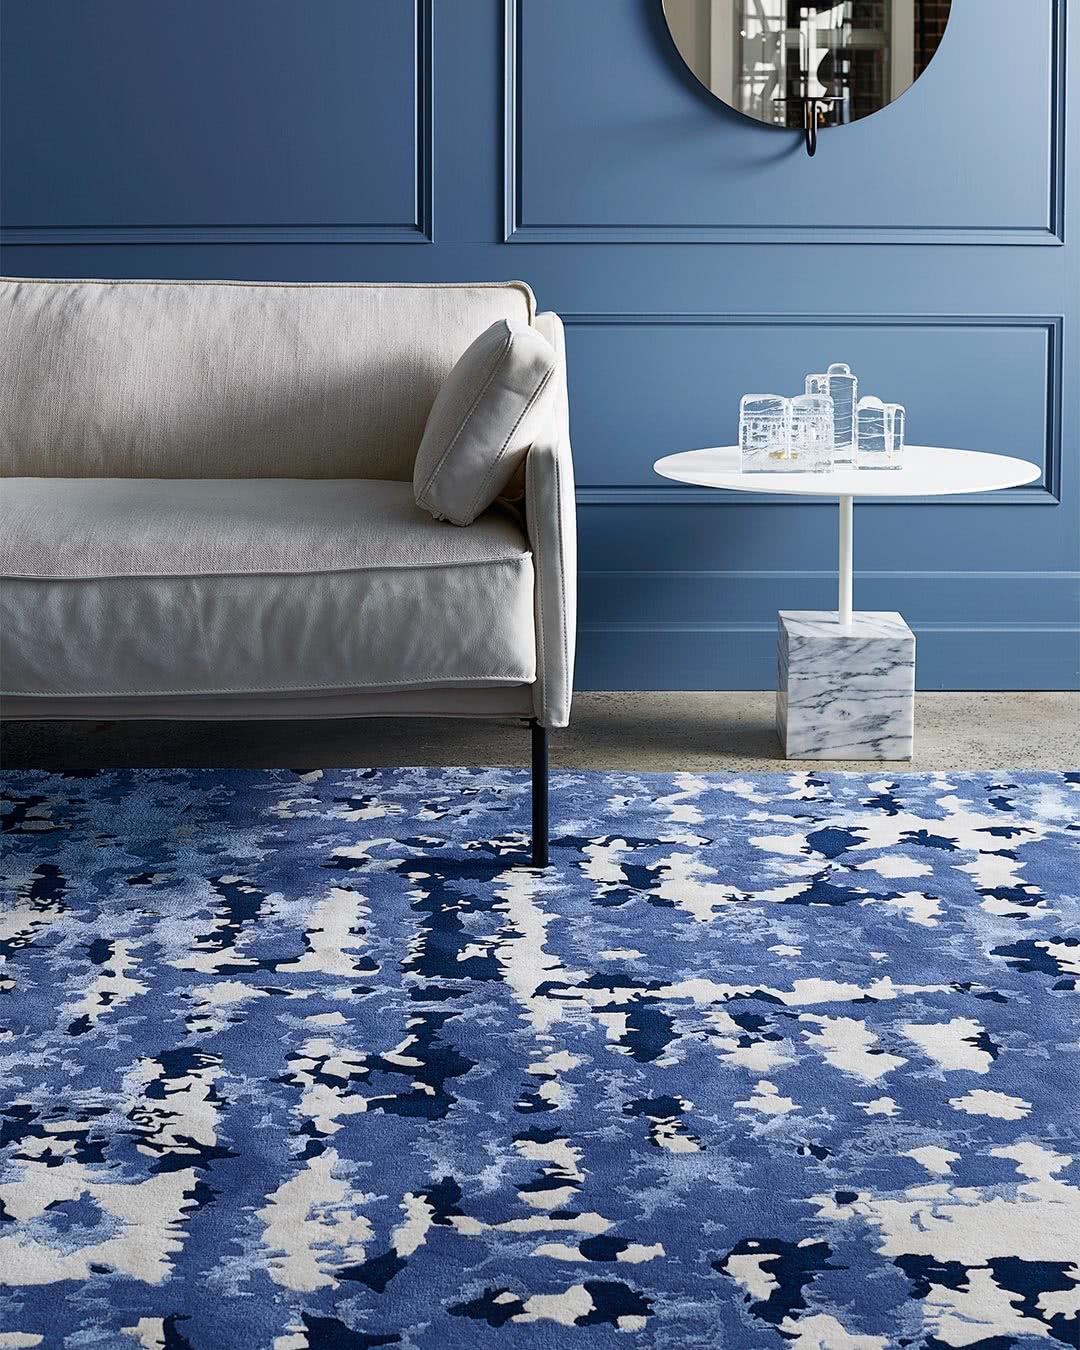 Styled setting featuring our modern, textured Zandt rug design in blue